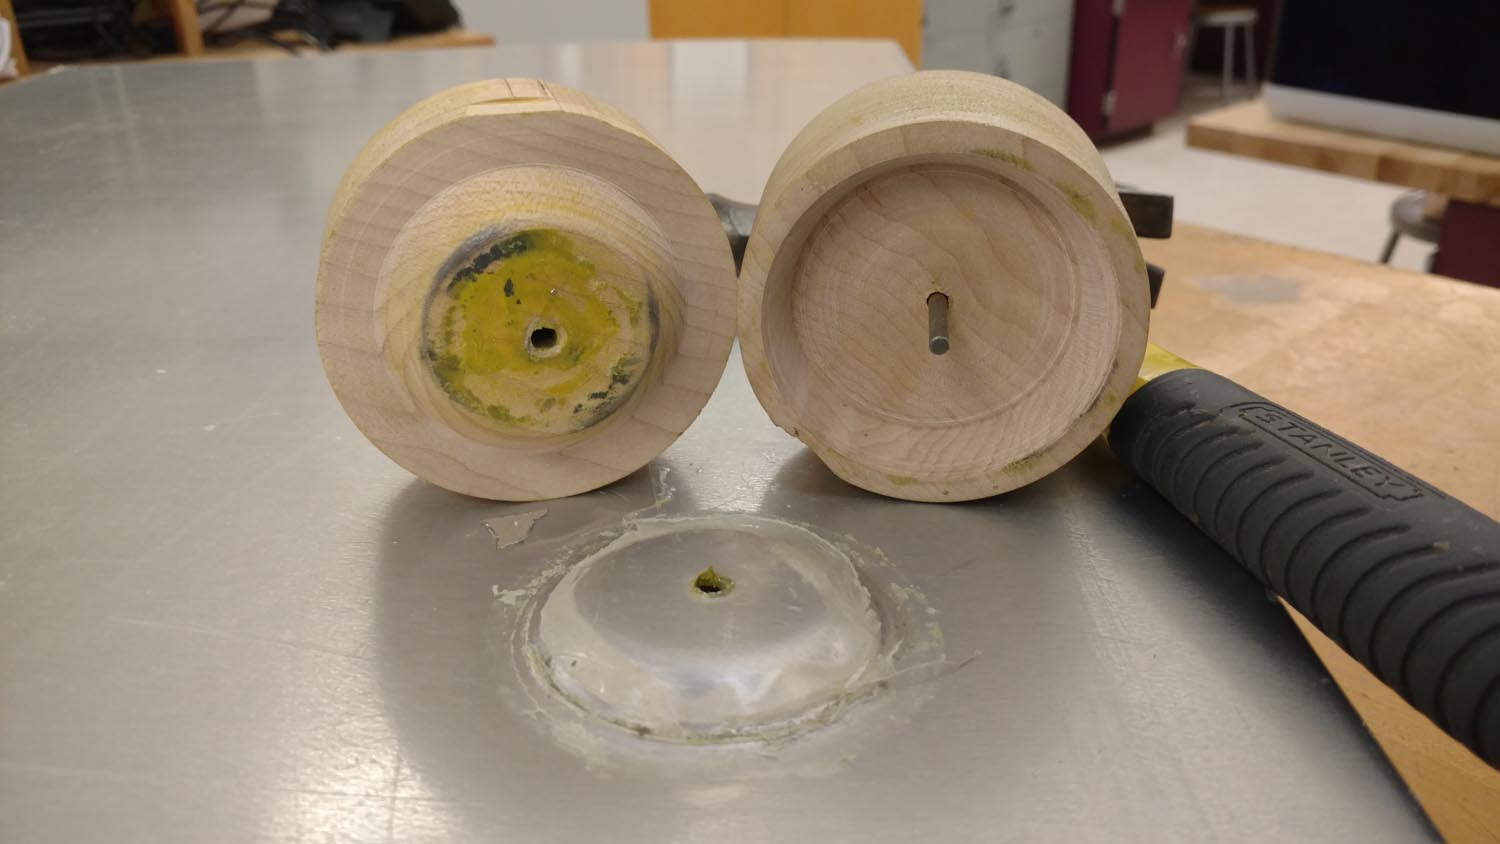 A homemade die was used to create a dimpled area that would be the lowest point in the bottom of the tank. A drain valve was added later.